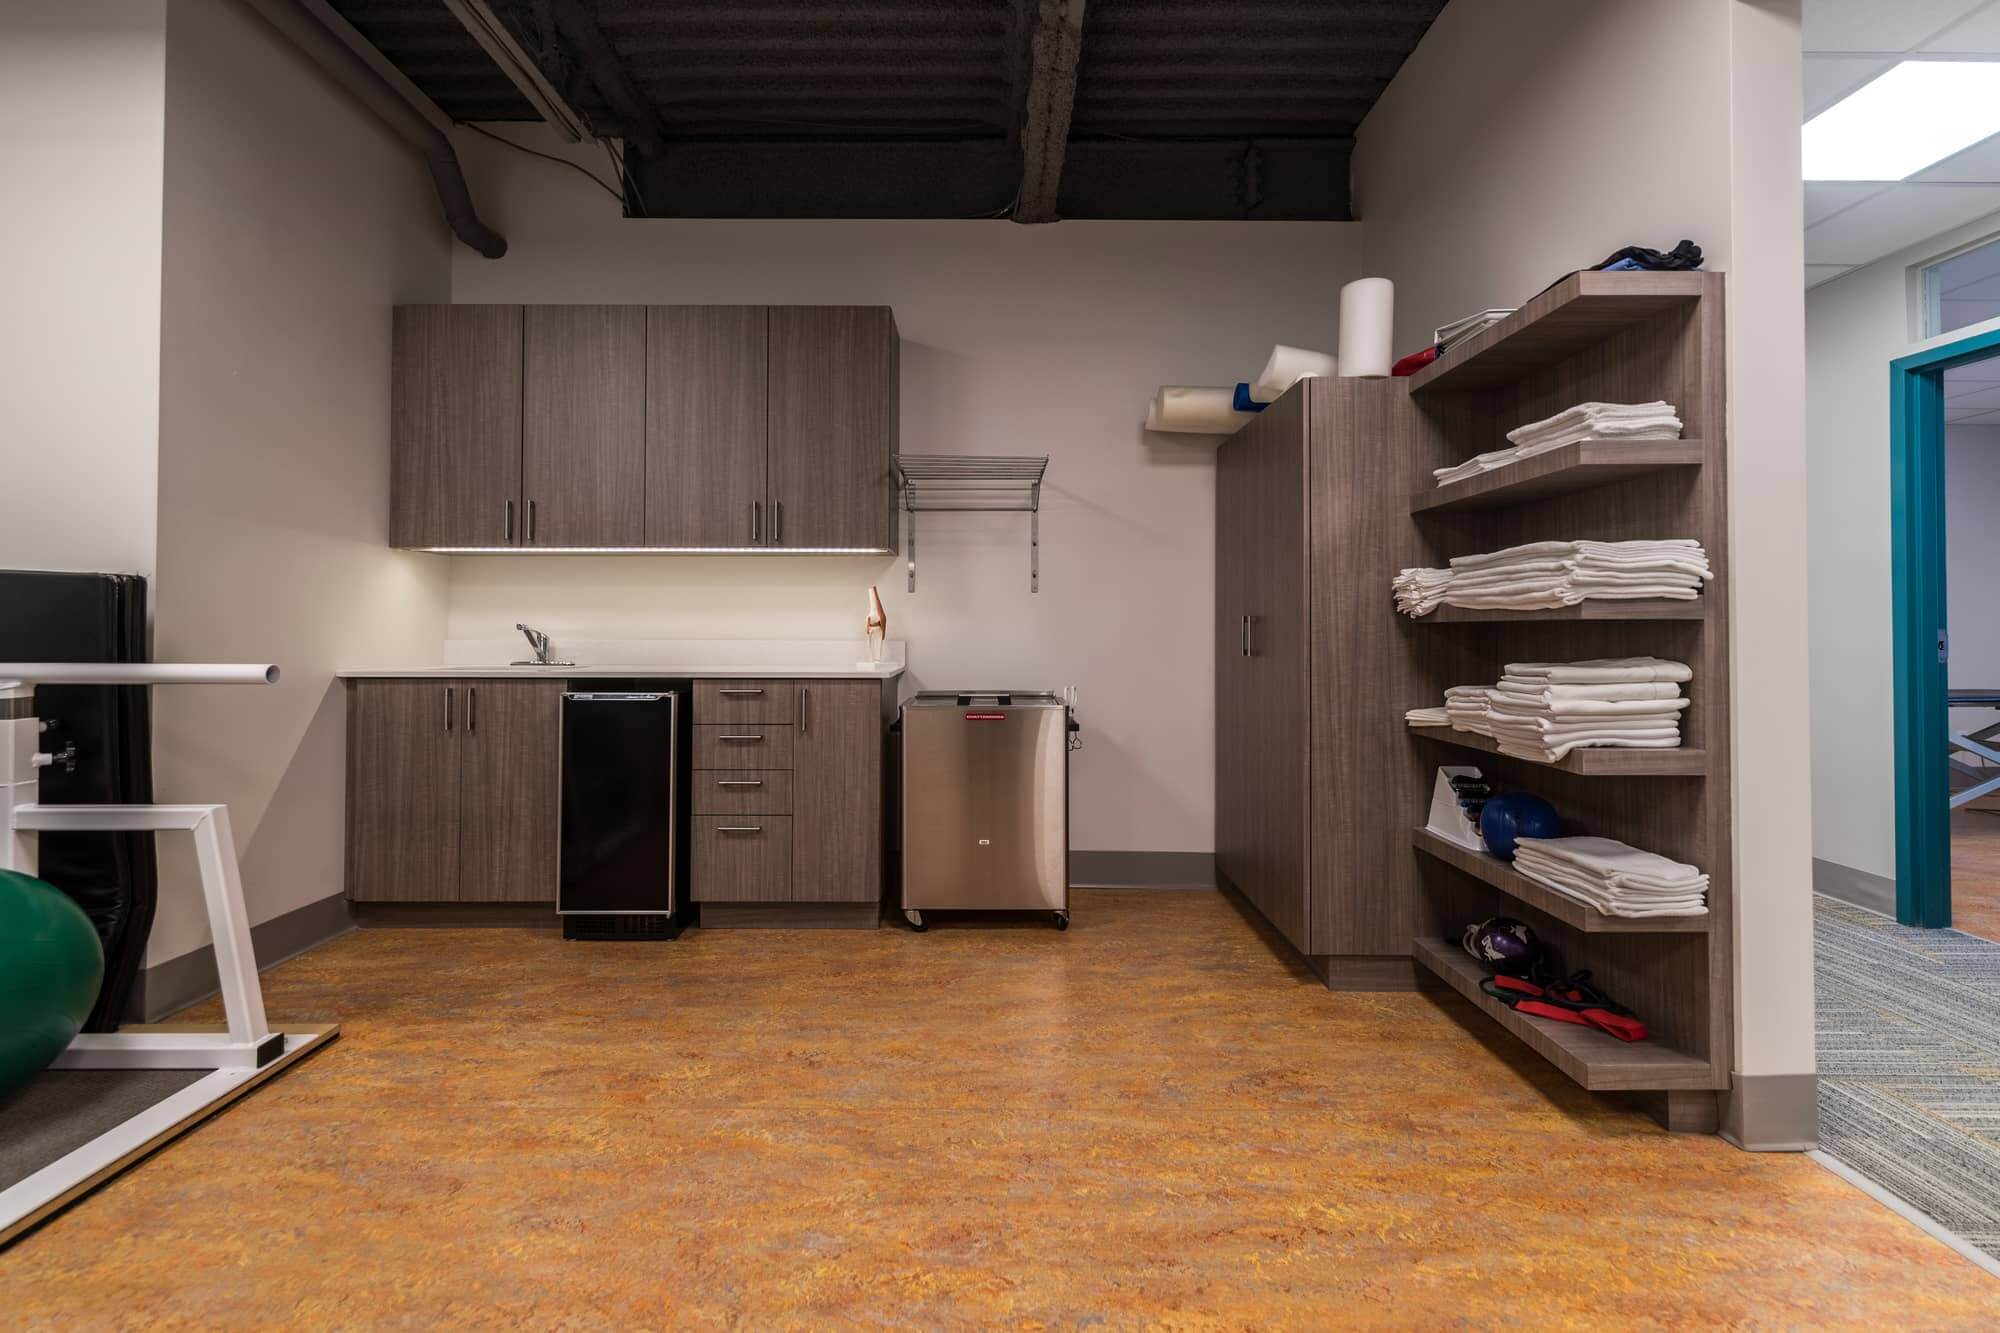 Rehabilitation room of a physiotherapy clinic with grey cabinets and shelf